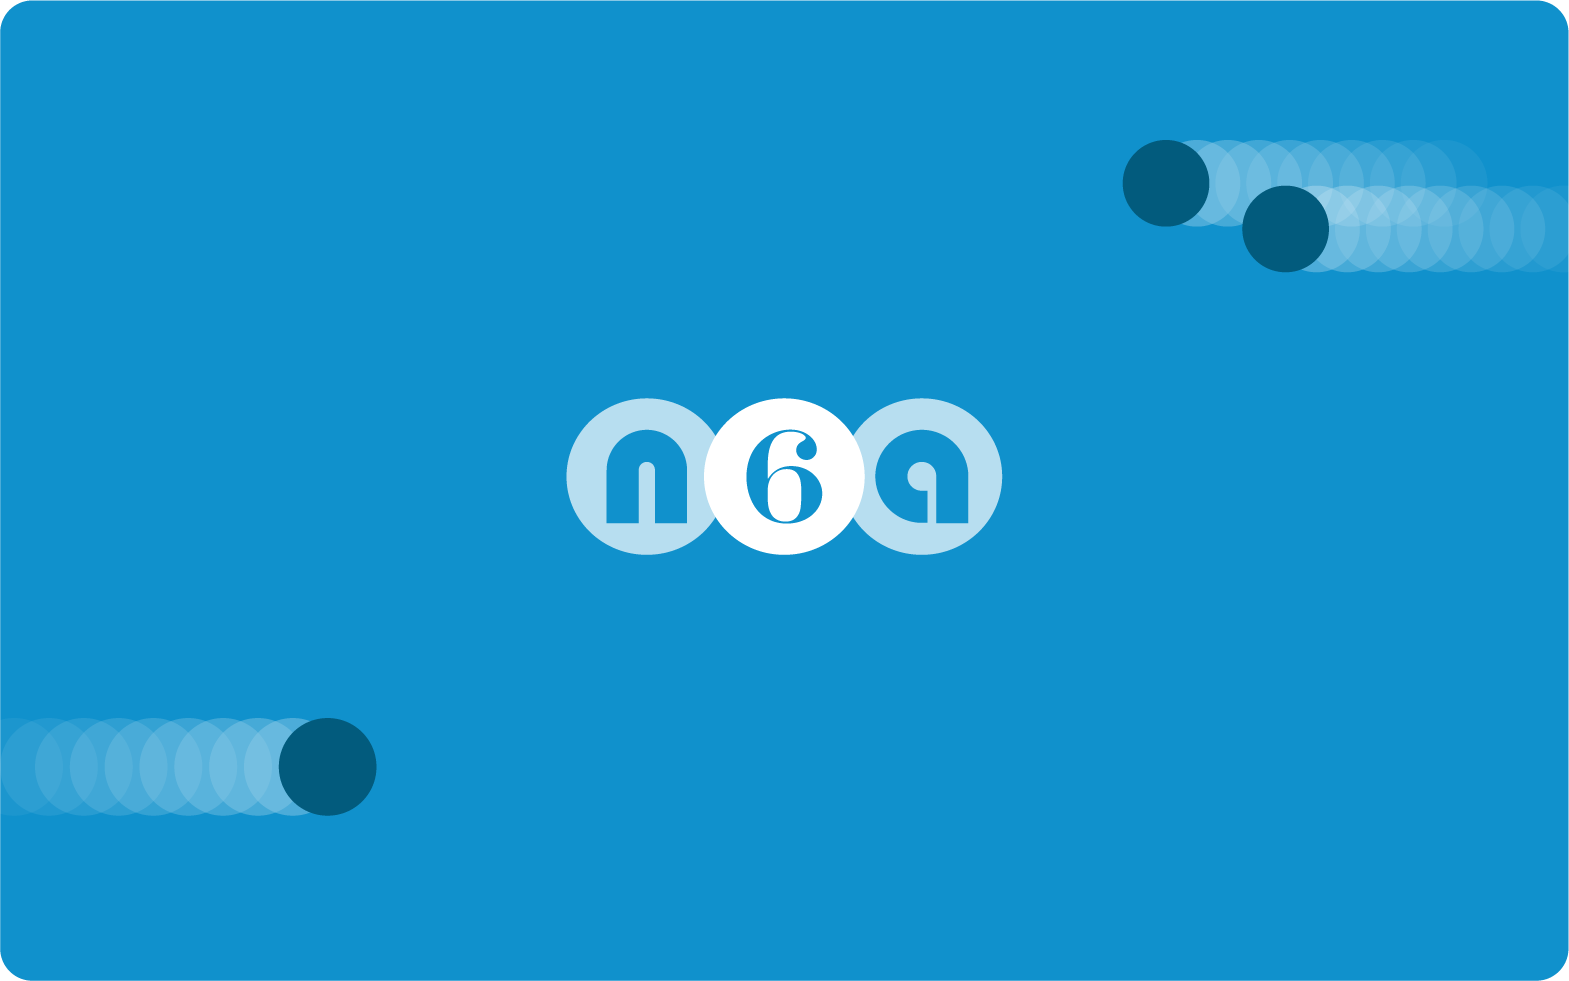 Meet N6A, a PR and events agency that used Hopin for a virtual product launch in the cannabis sector